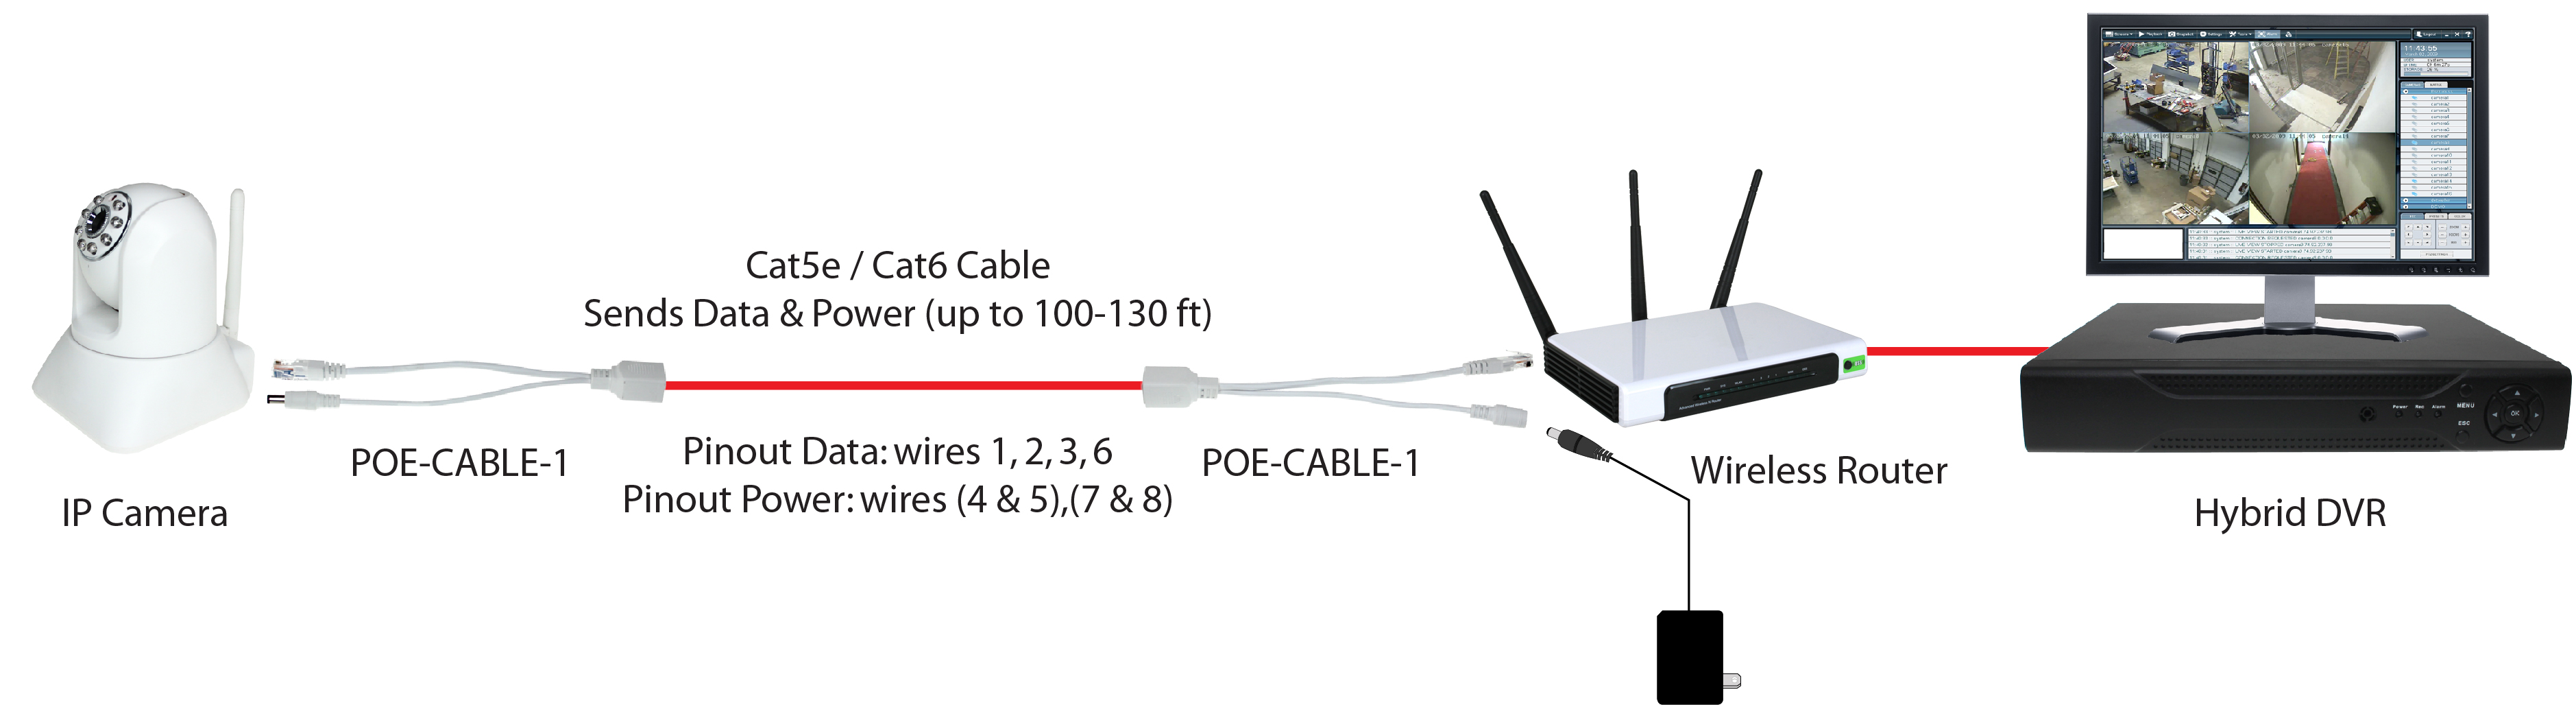 6 Inch Power Over Ethernet Poe Cable 2pcs Set Pi Manufacturing Cat5e Wire Diagram Other Examples